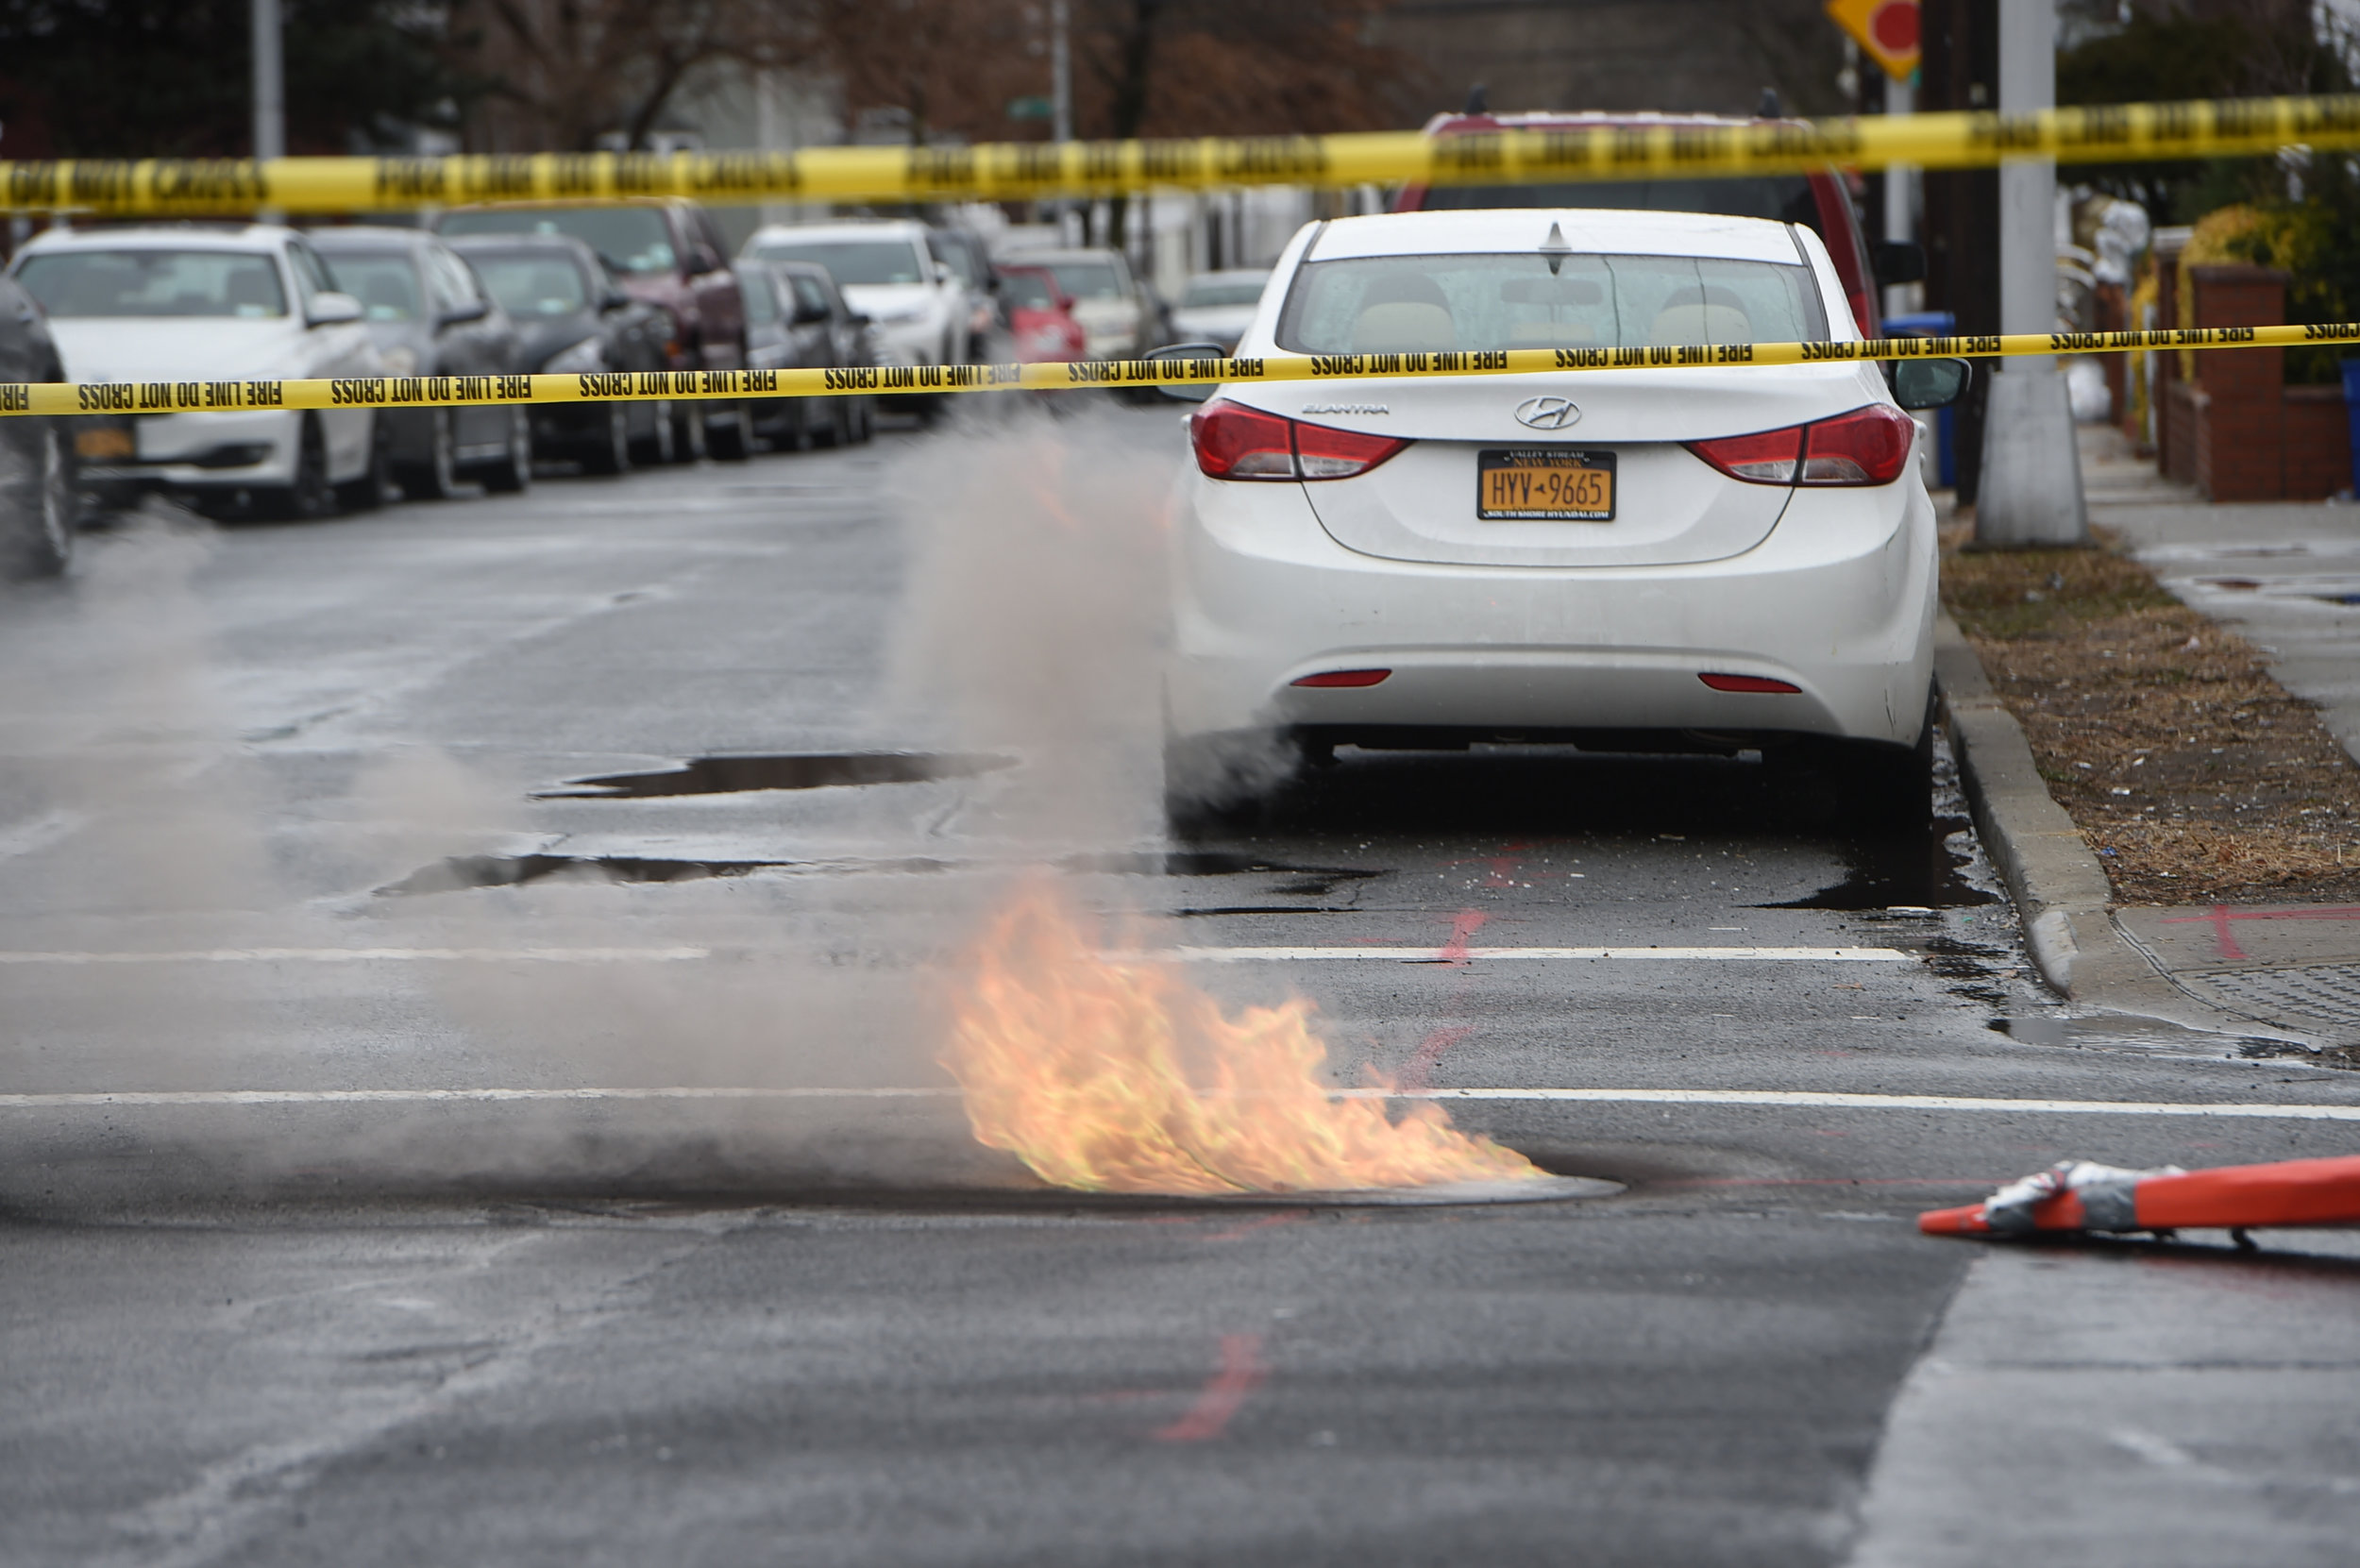 A manhole fire knocked out power in Hollis.  Eagle  photo by Todd Maisel